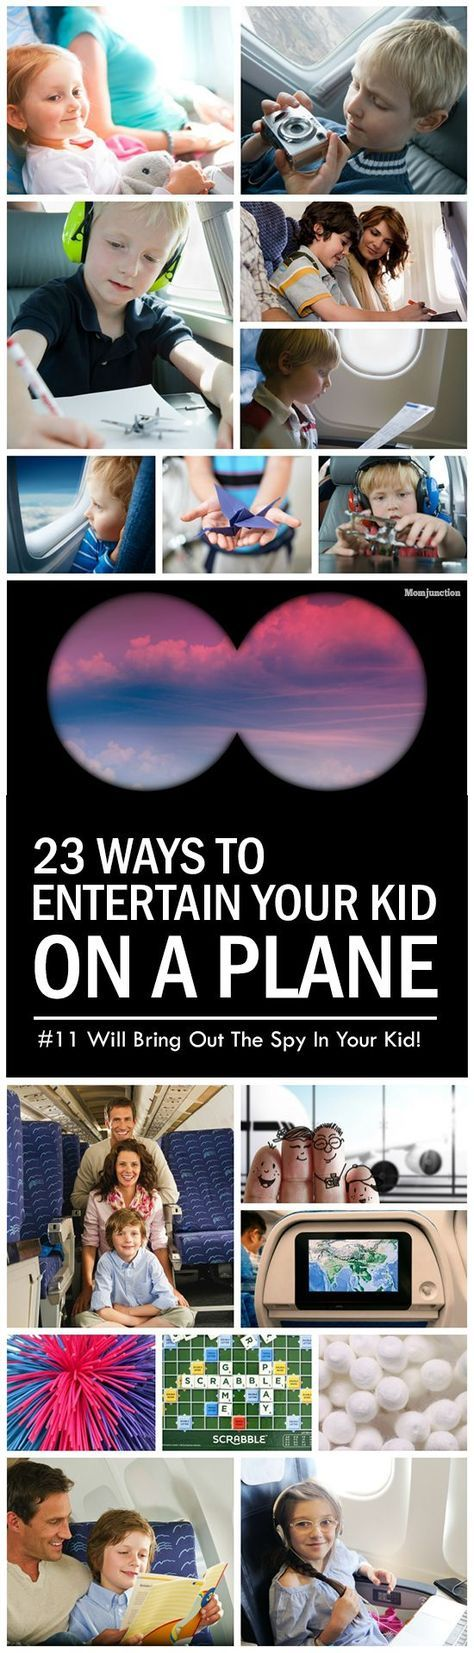 23 Ways To Entertain Your Kid On A Plane. Number 11 Will Bring Out The Spy In Your Kid!: Here are few tips to entertain your kids on an airplane. At the same time mark the stuff that you might not want to send off with check-in baggage